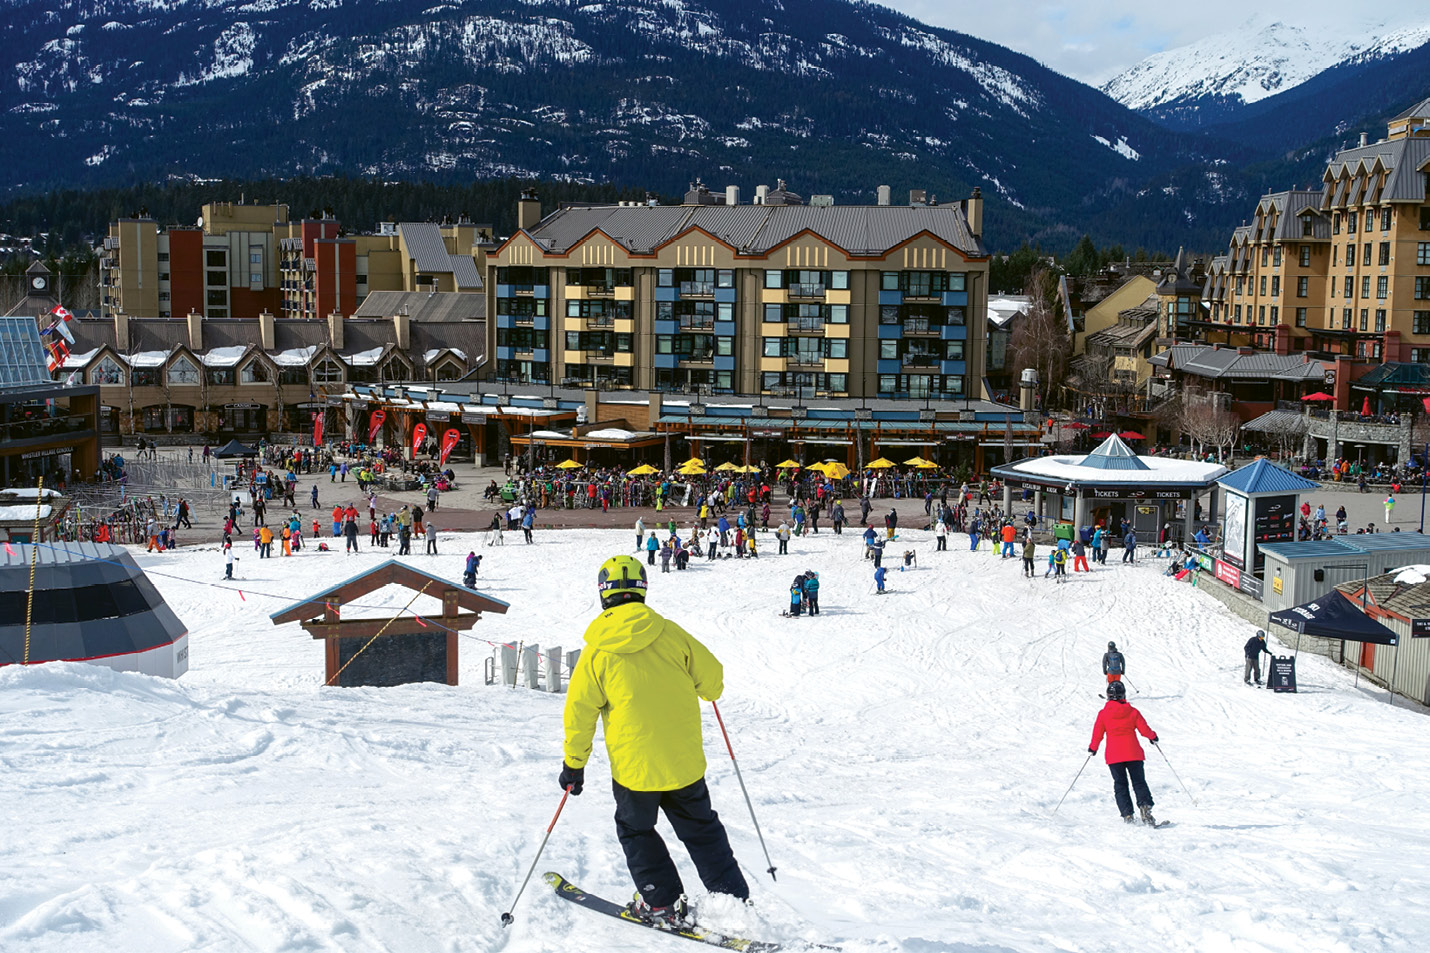 ...to the base village with its dozens of restaurants and après-ski bars in walking distance of the ski-in town center.